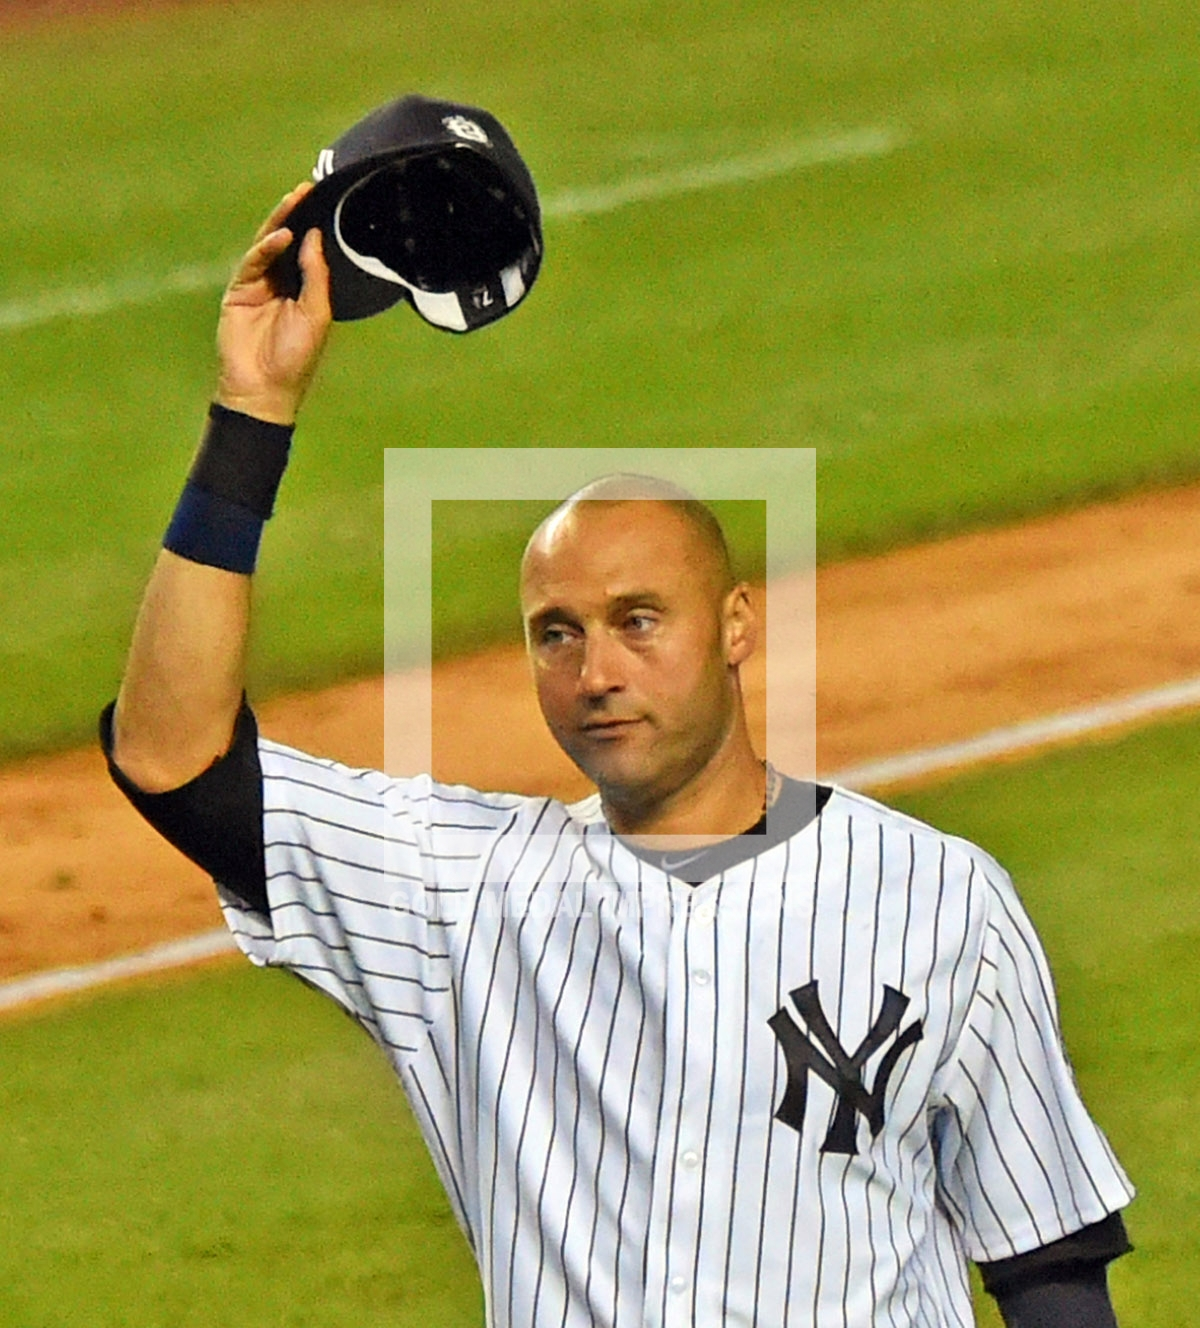 New York Yankees Derek Jeter Waves Goodbye To The Fans At